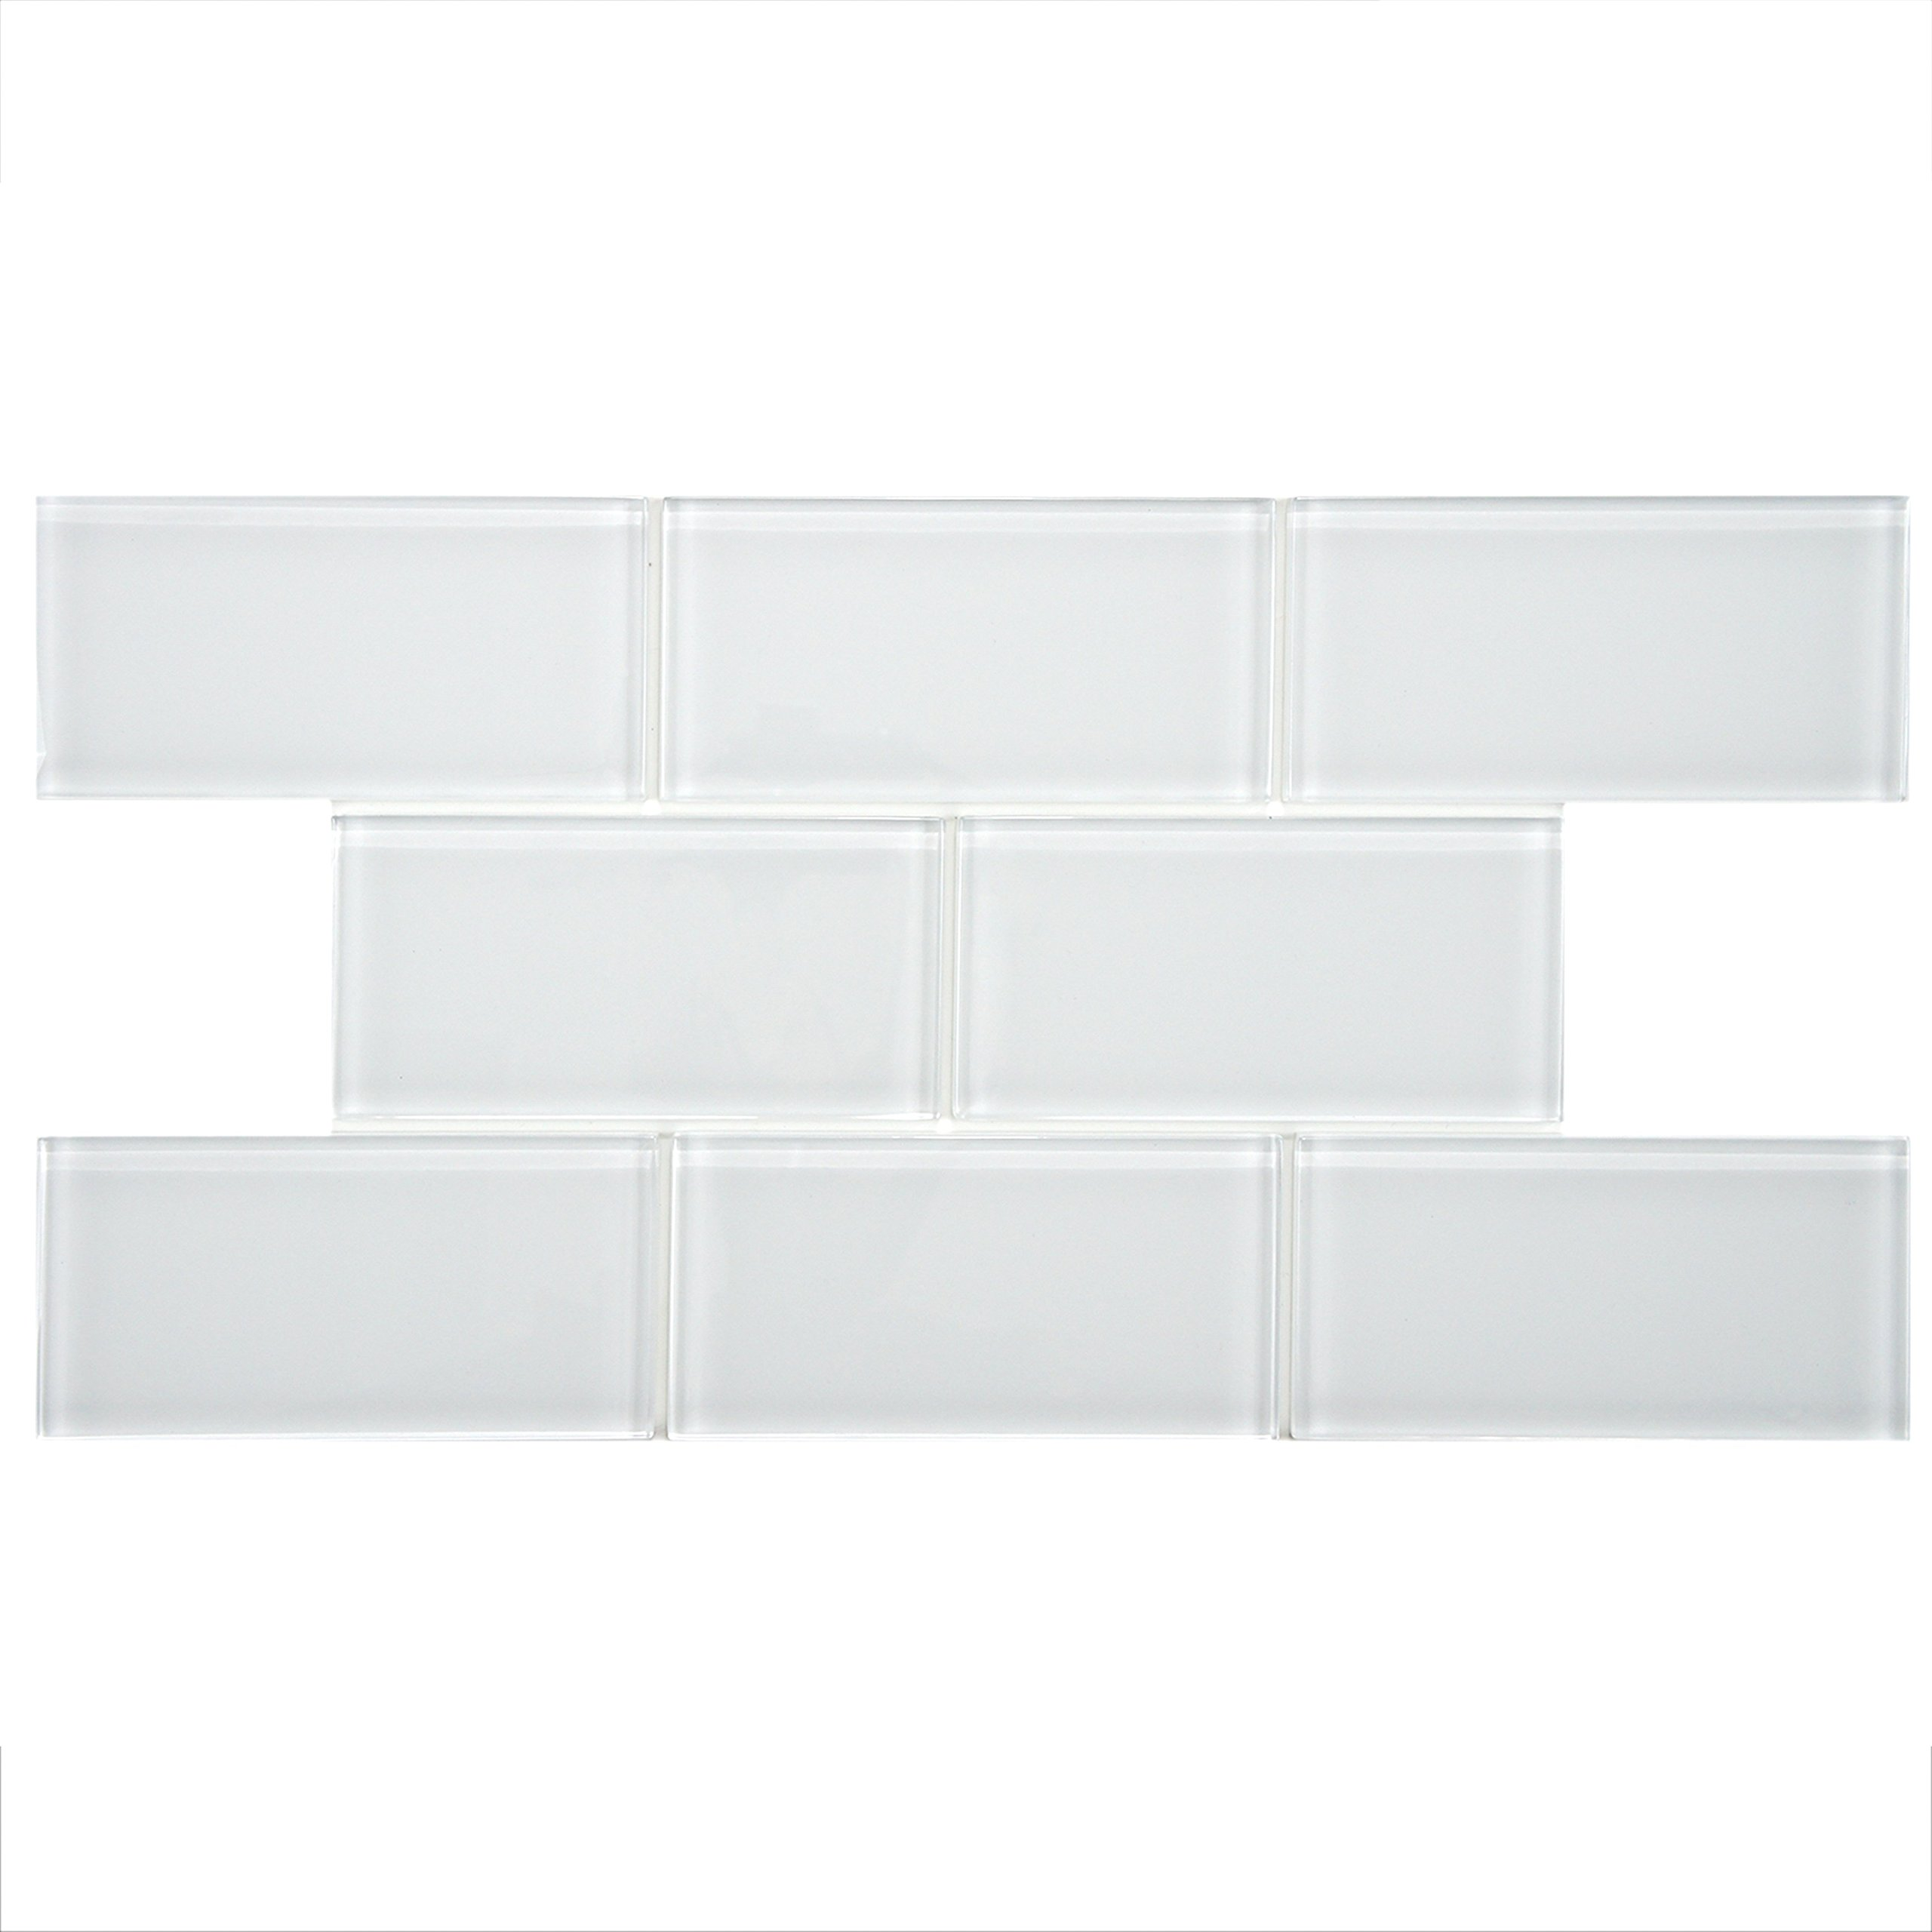 SomerTile GDM3SIC Sierra Subway Glass Wall Tile, 3'' x 6'', Ice White by SOMERTILE